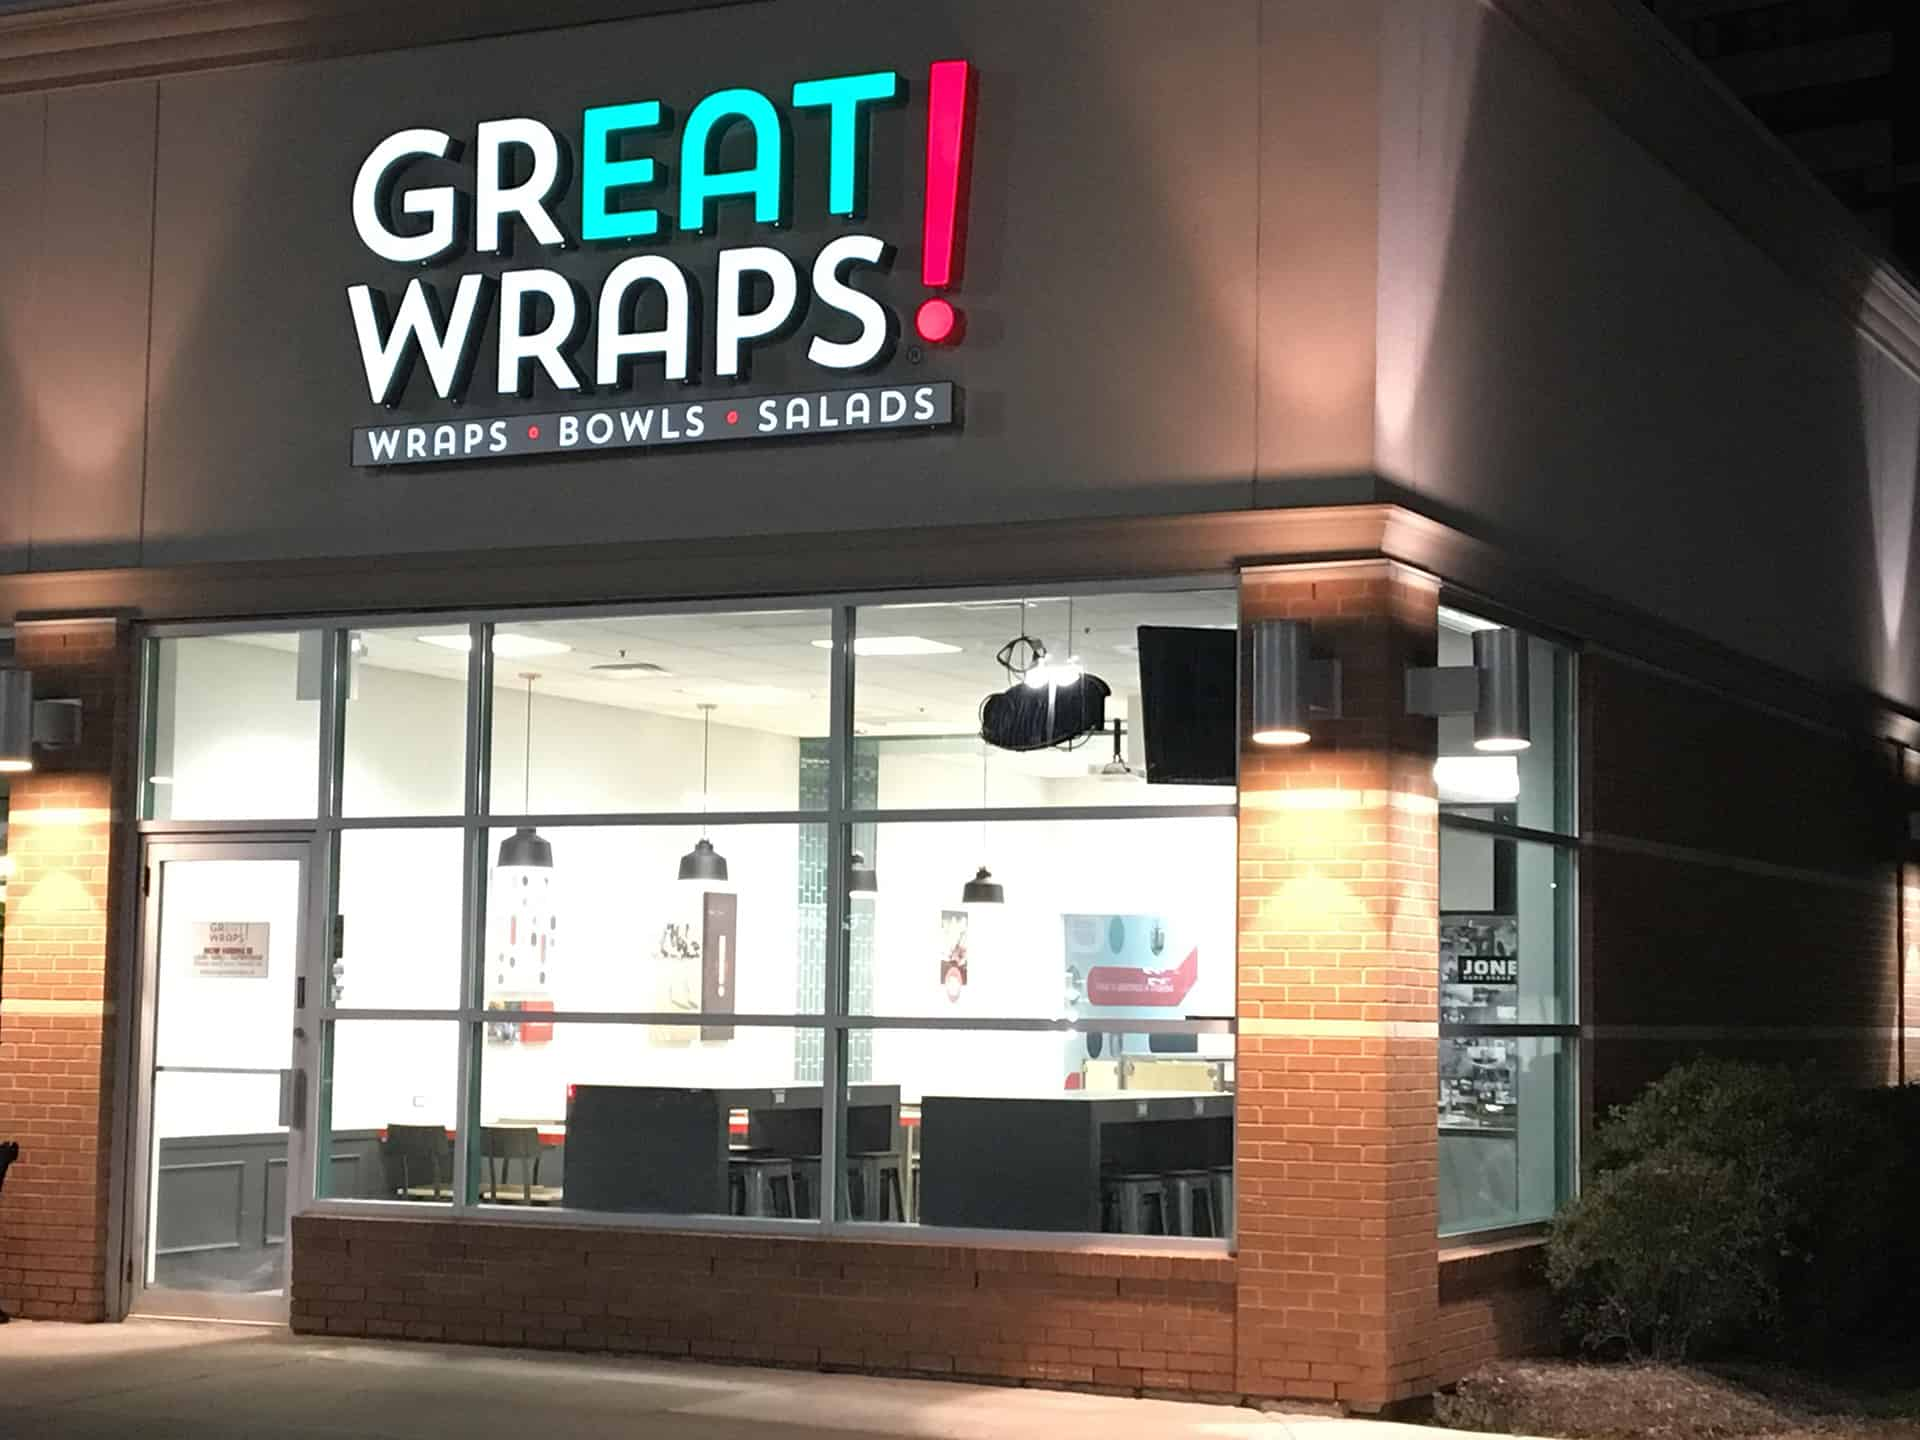 Great Wraps QSR restaurant rebranding and strategy